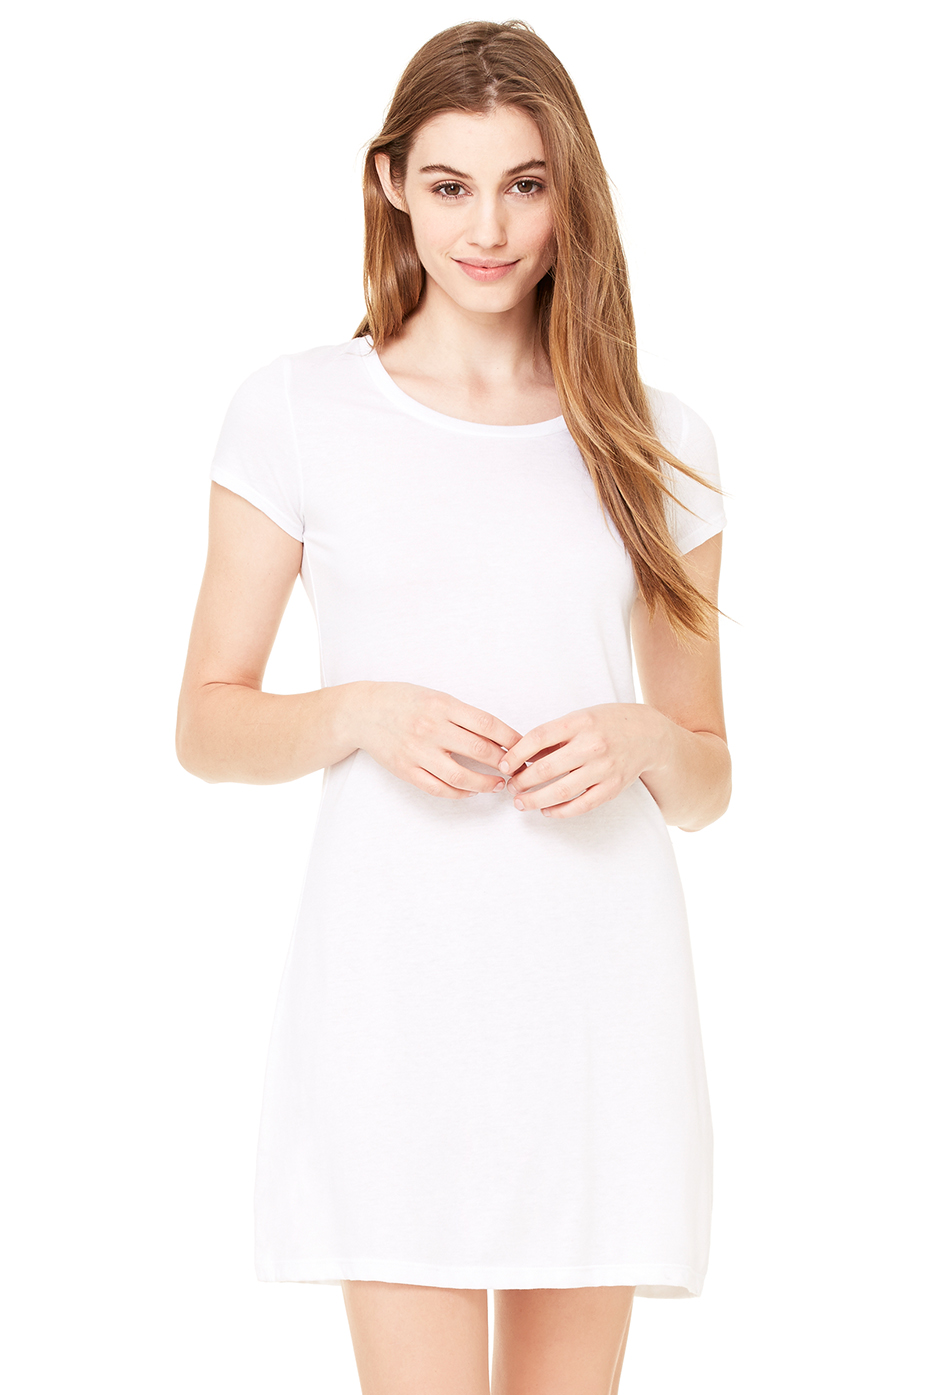 Women 39 S Vintage Jersey Short Sleeve T Shirt Dress Bella